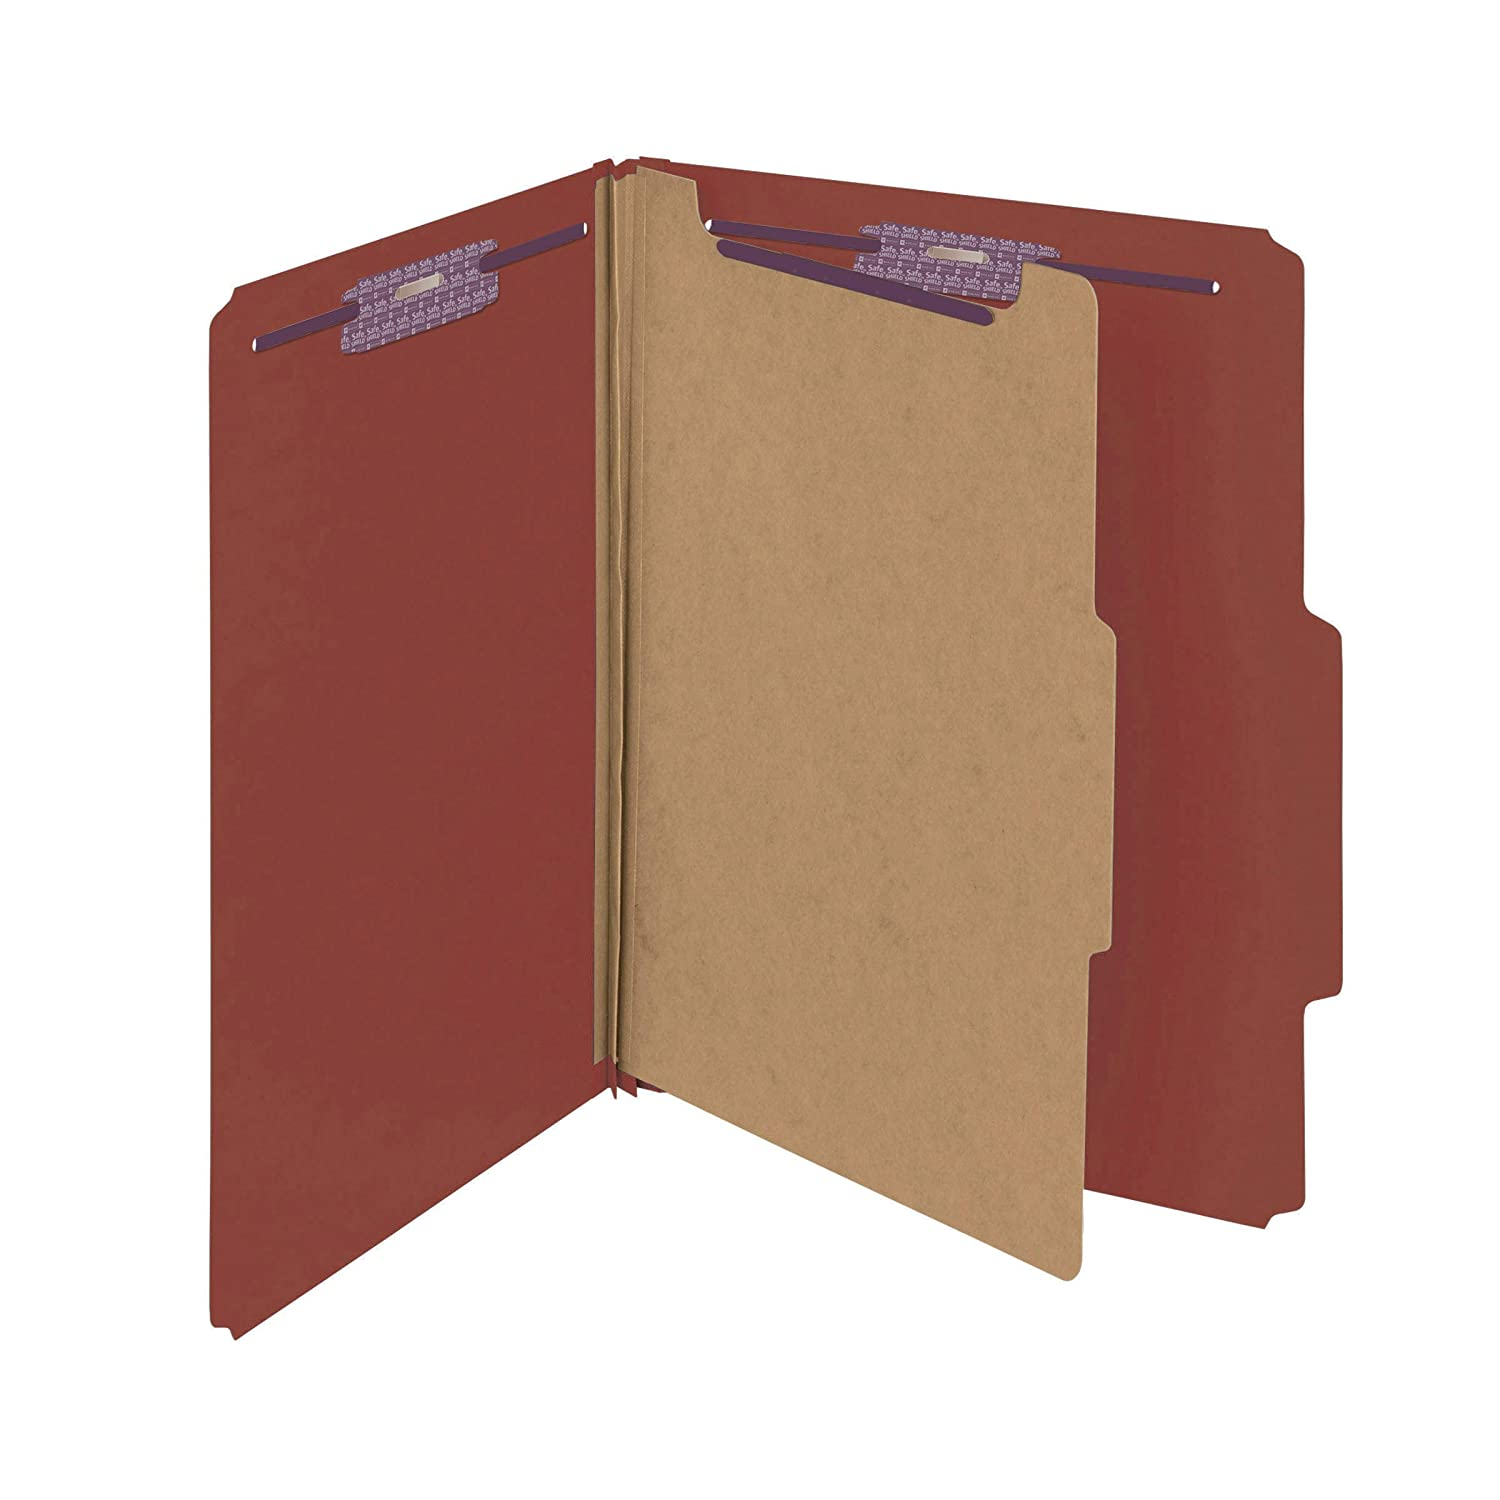 """B0006HUYNK Smead Pressboard Classification File Folder with SafeSHIELD Fasteners, 1 Divider, 2"""" Expansion, Letter Size, Red, 10 per Box (13775) 71BZ2BOa4mnL"""